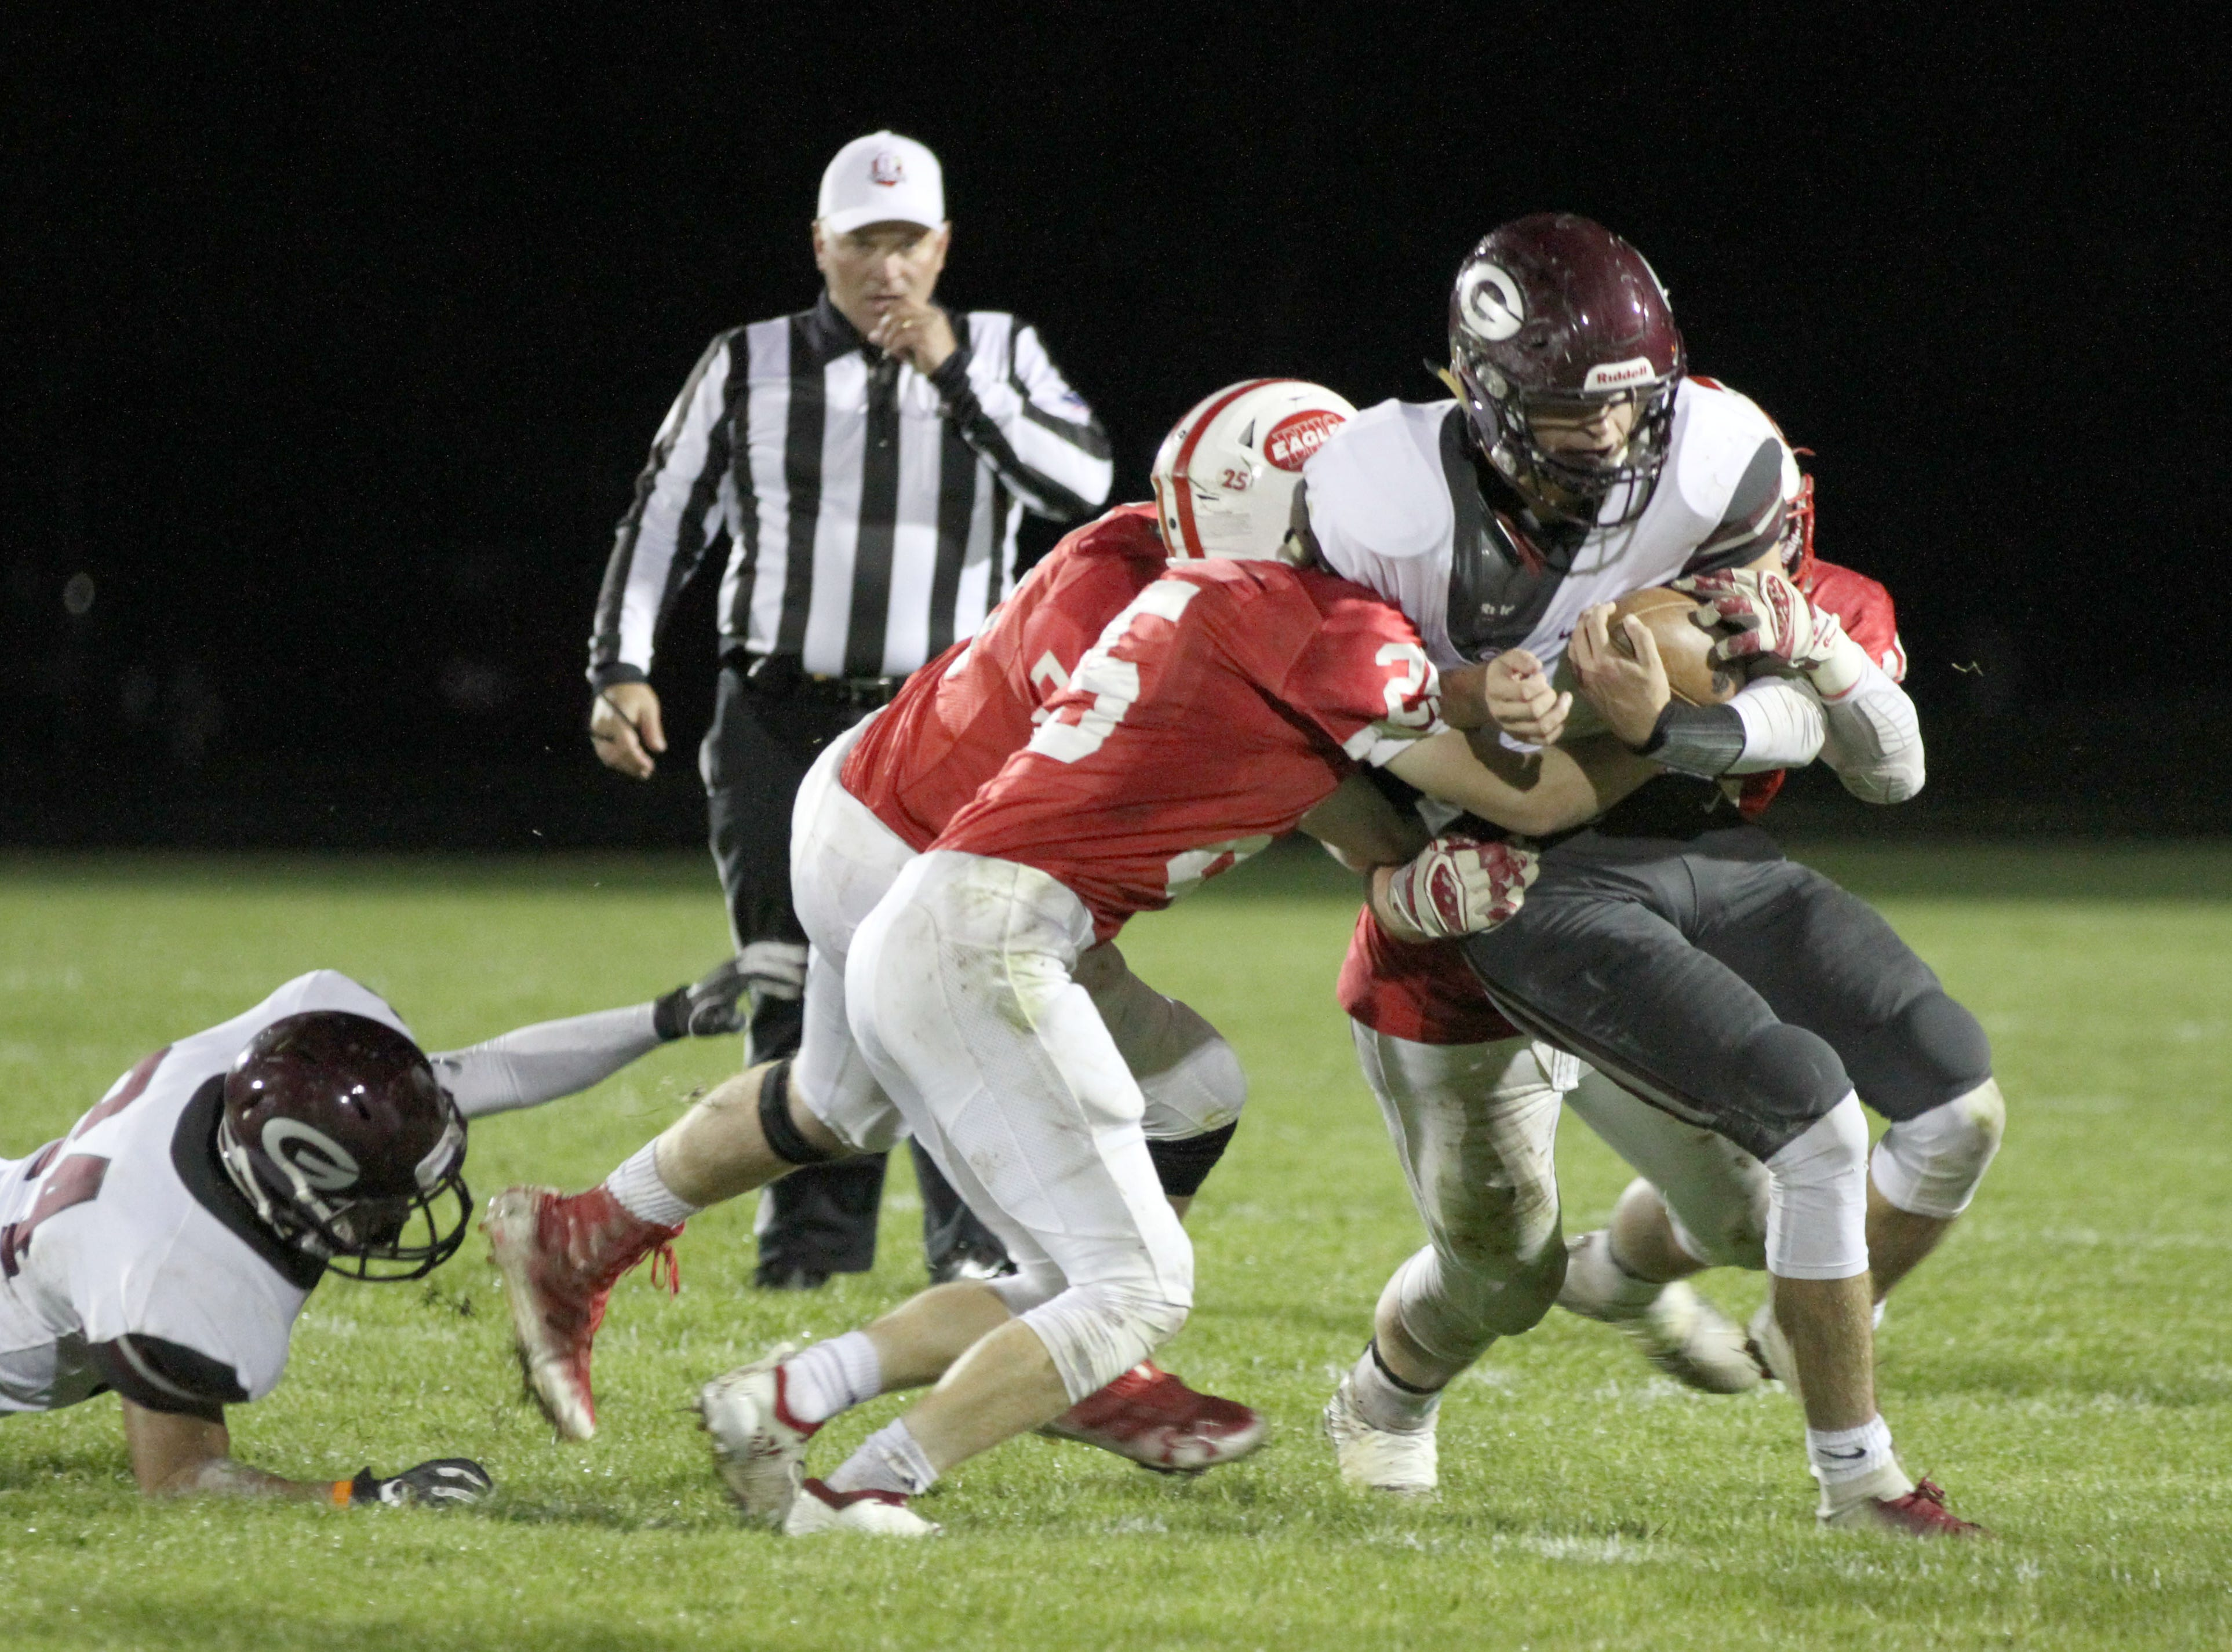 Genoa's Jacob Plantz is tackled by three Eastwood defenders.